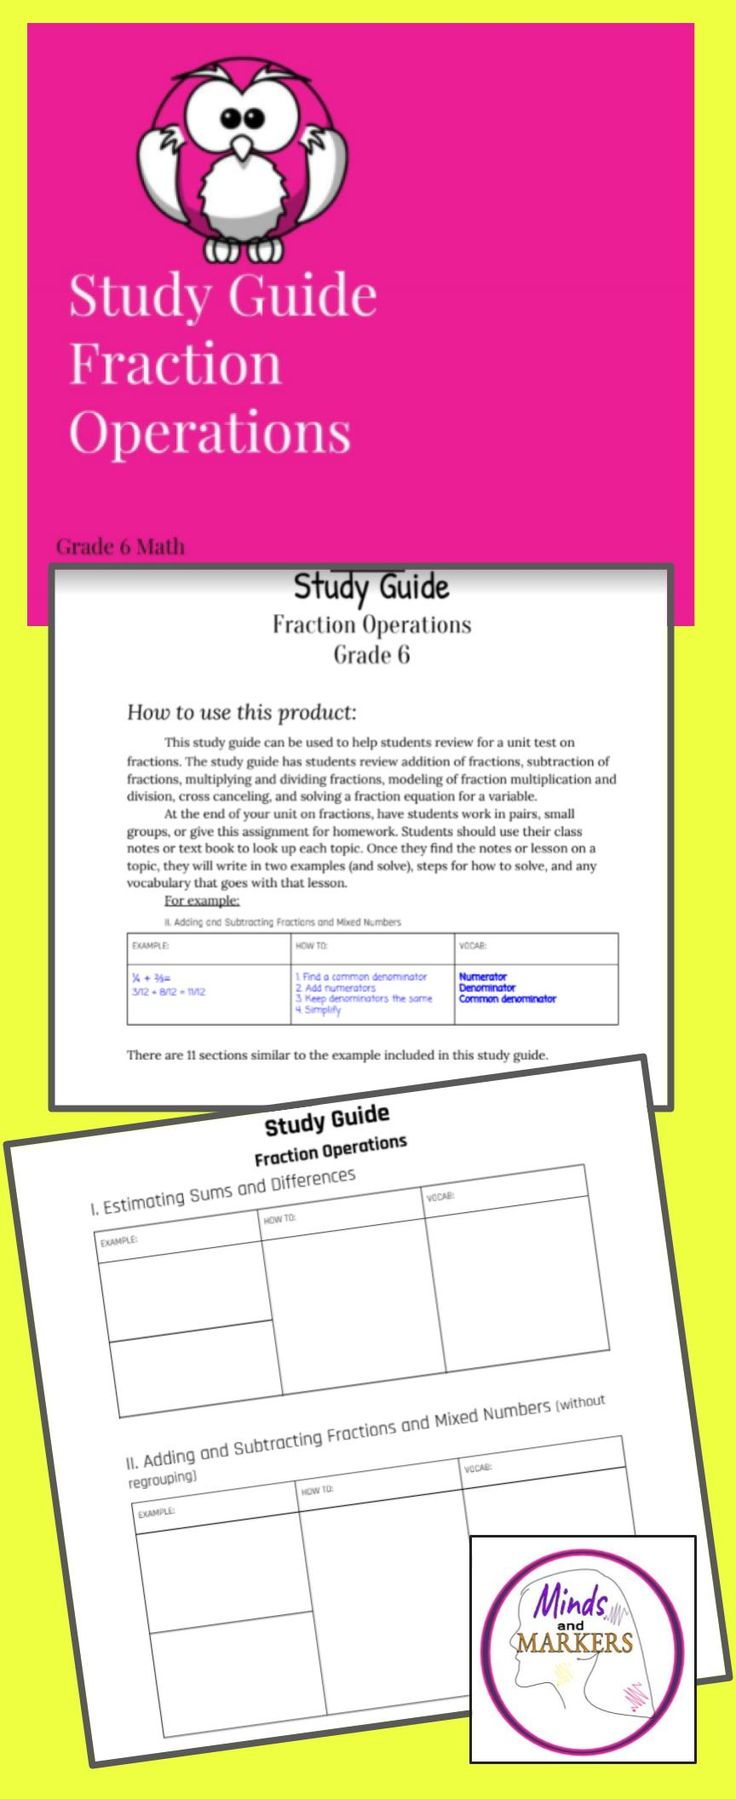 Math Placement Test Study Guide - UW-Superior